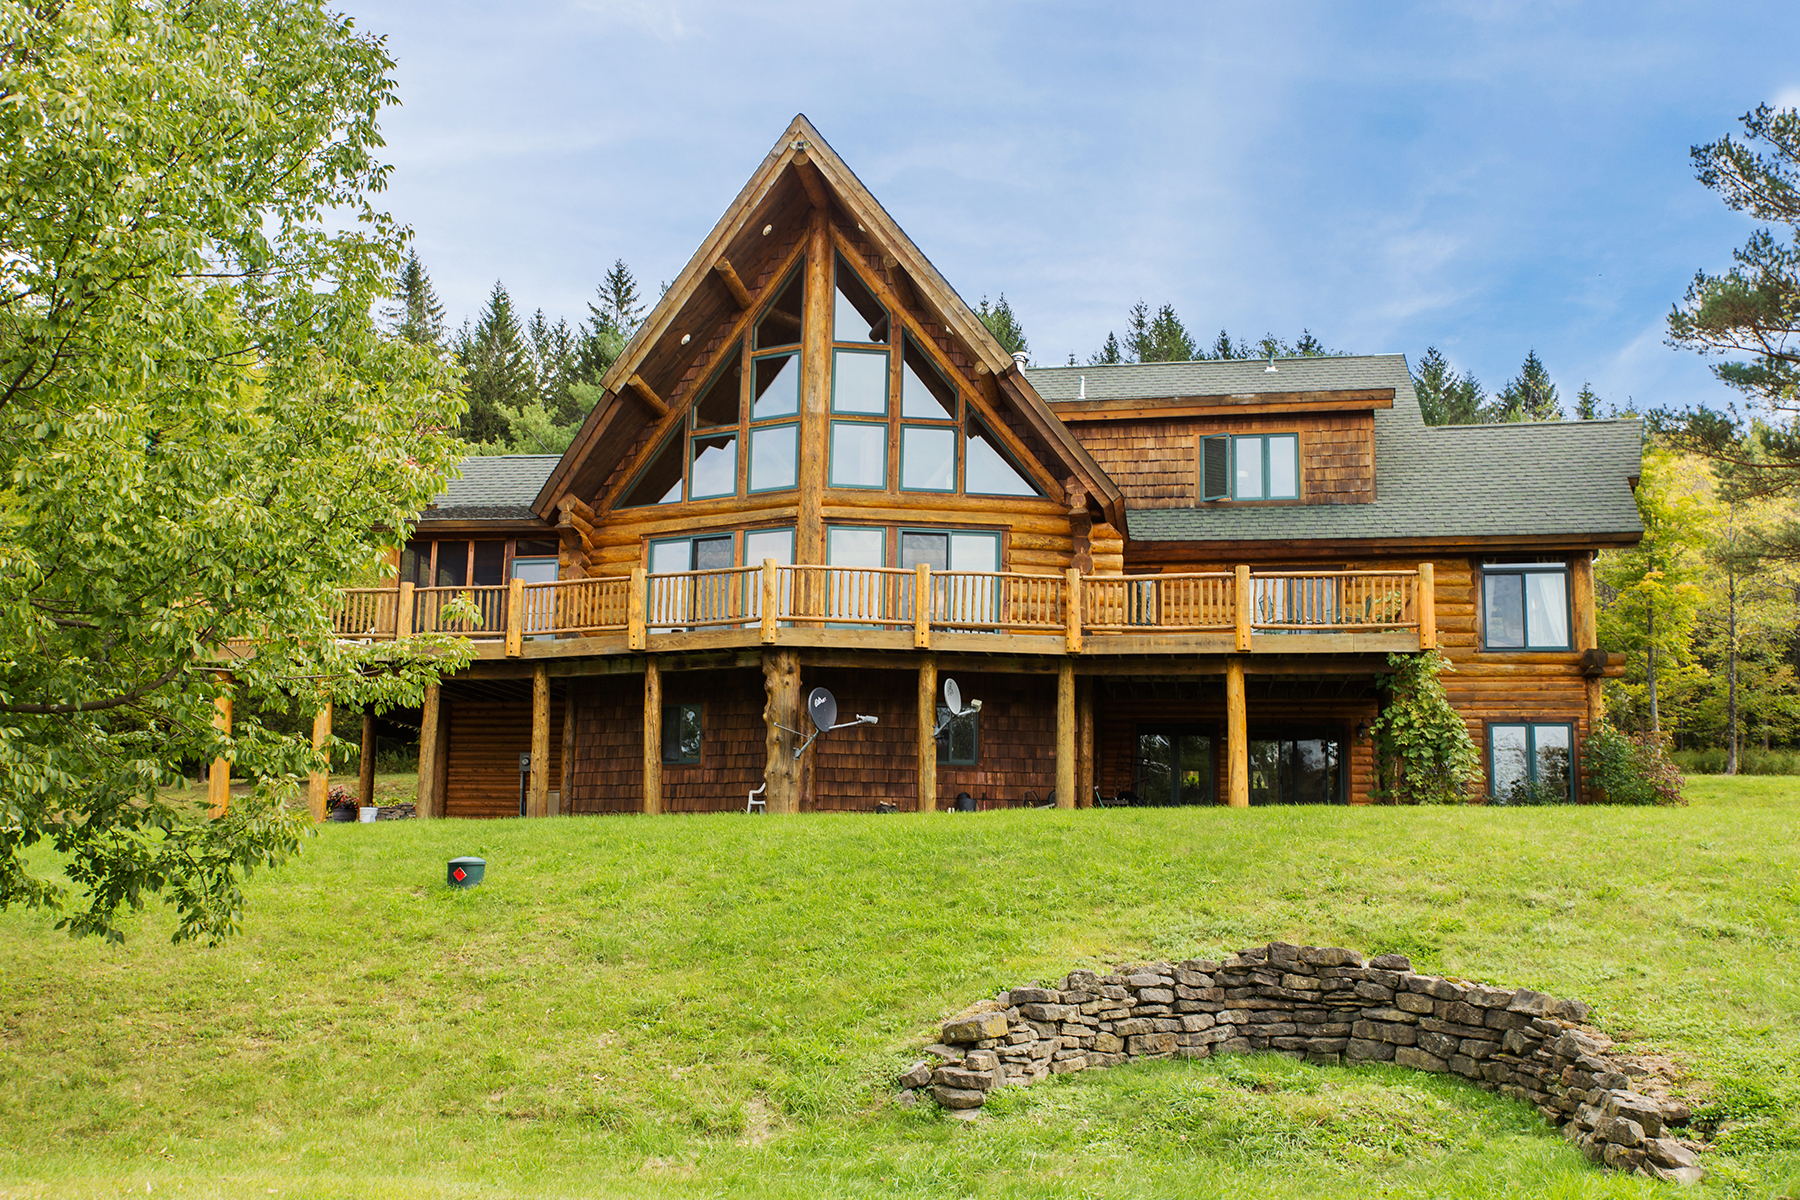 Single Family Home for Sale at Canadian Spruce Log Home 667 County Route 353 Rensselaerville, New York 12147 United States